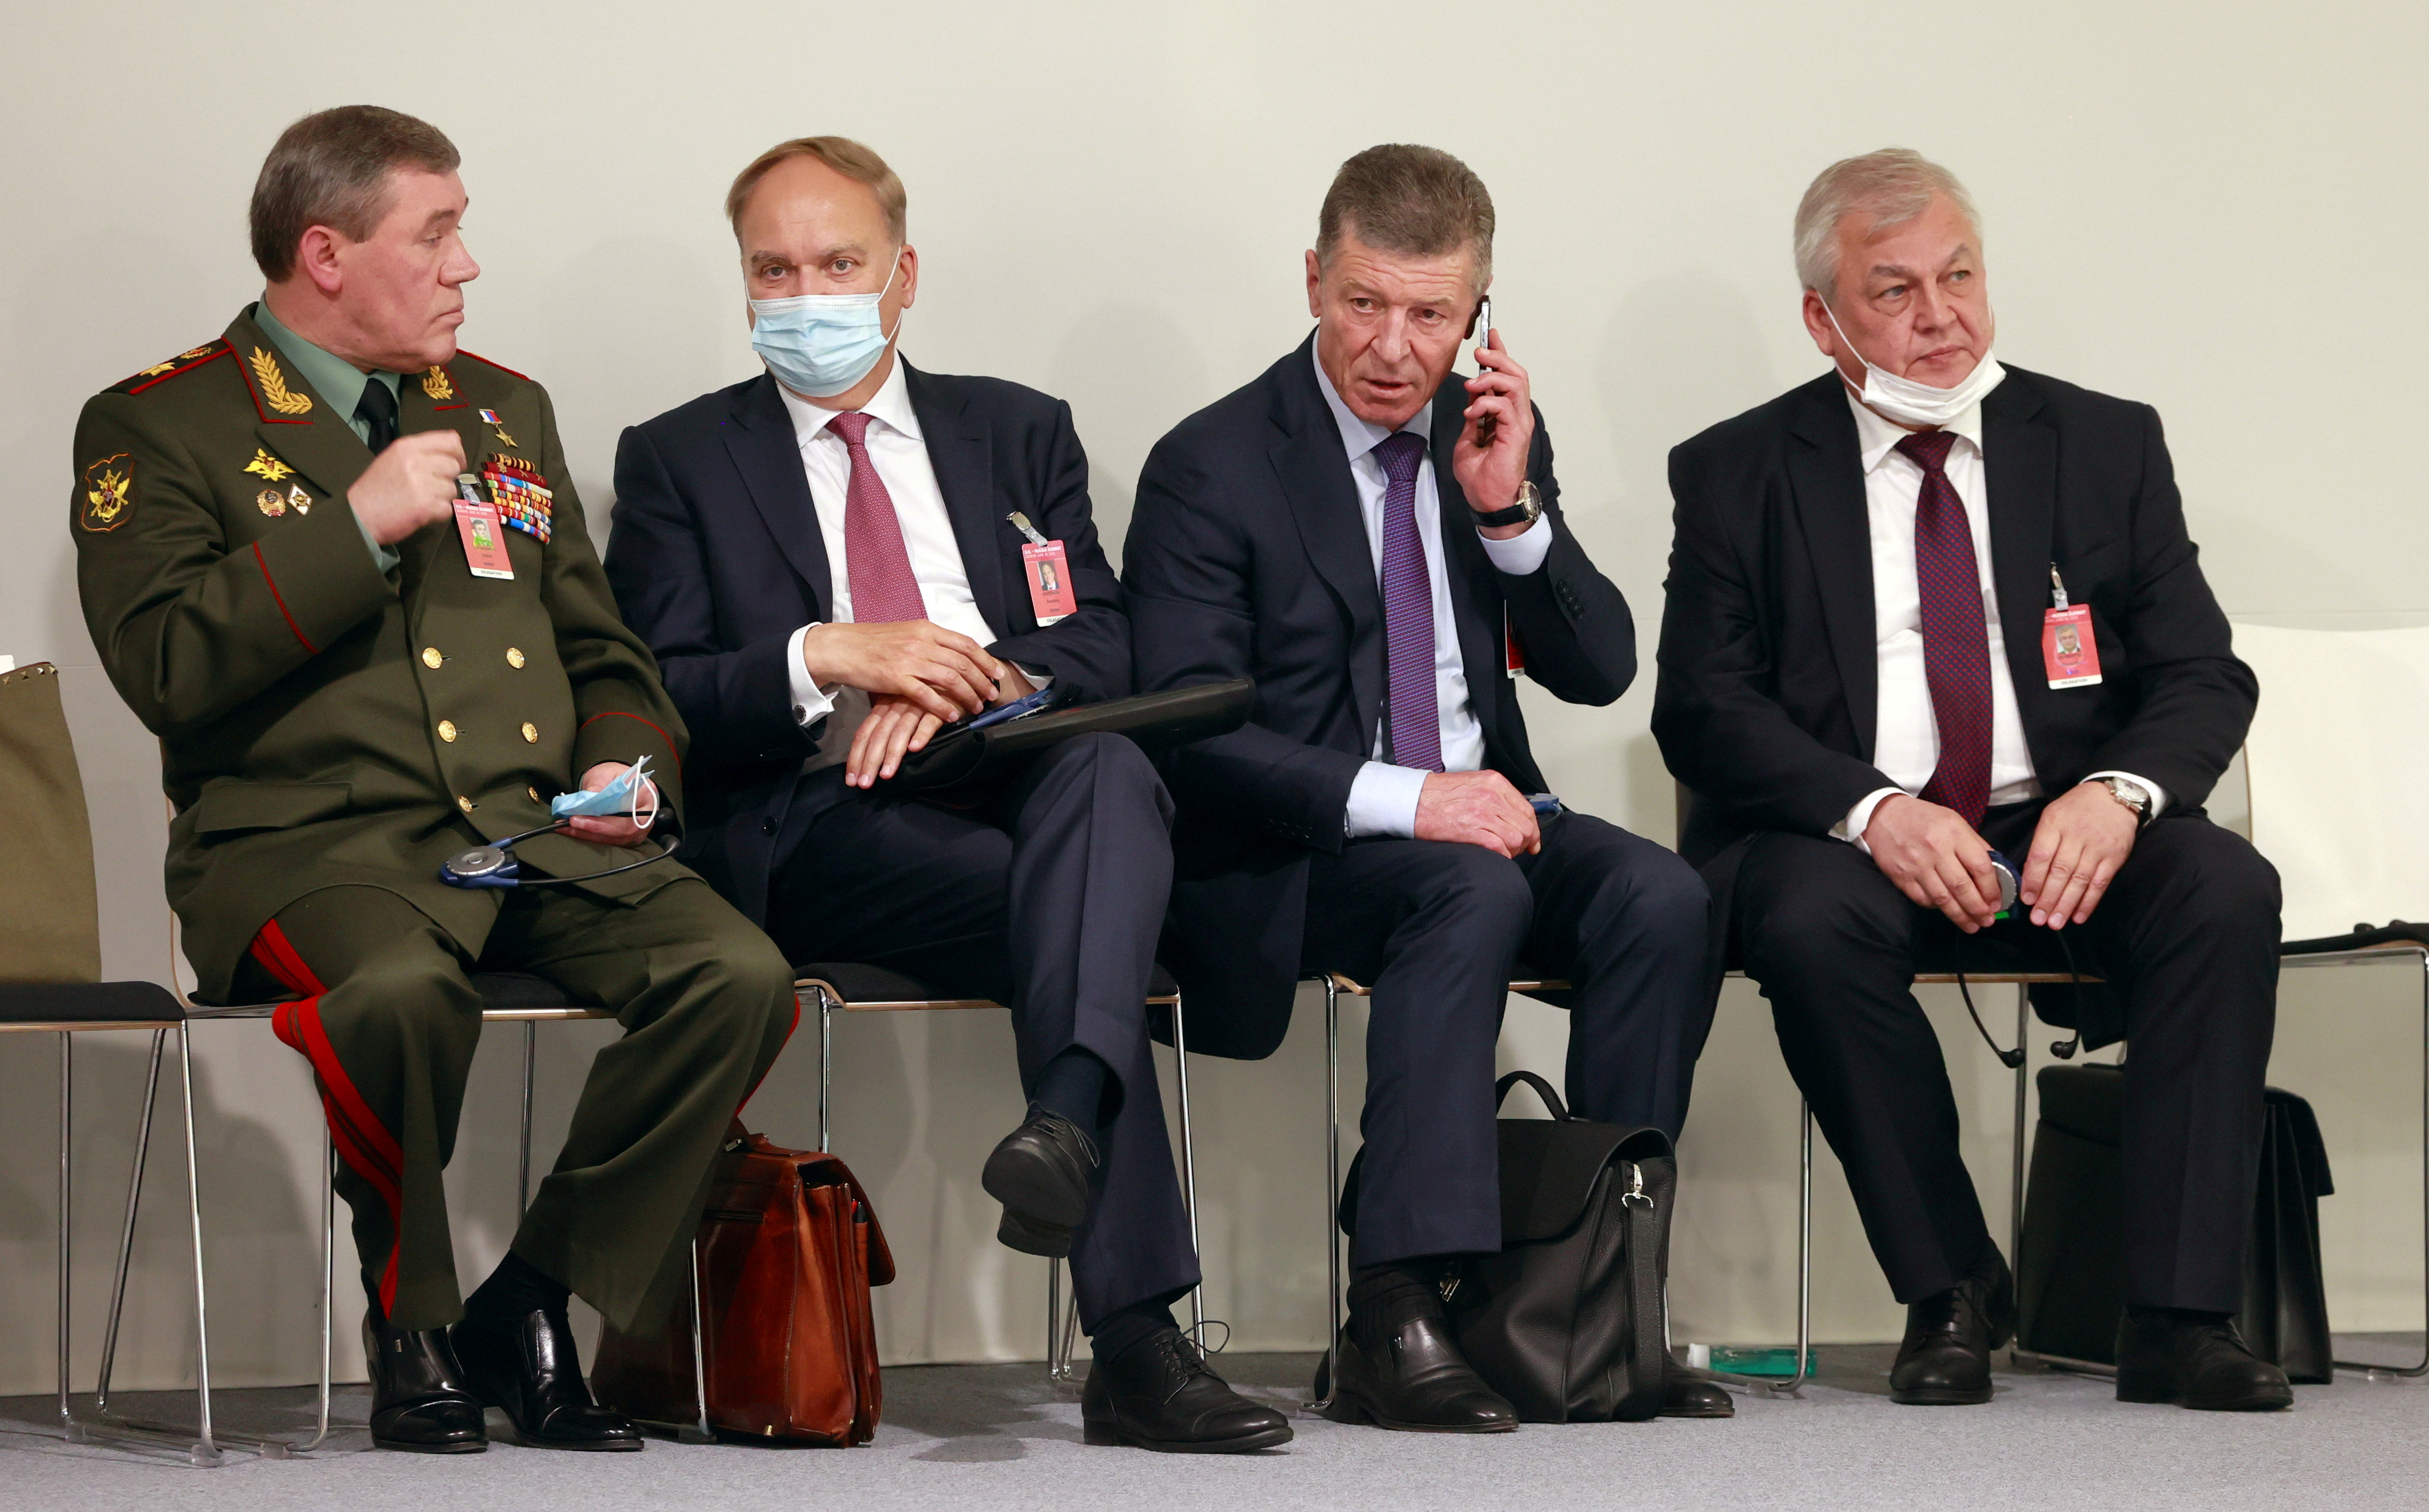 (L to R) Chief of the General Staff of Russian Armed Forces Valery Gerasimov, Russia's ambassador to the United States, Anatoly Antonov, Deputy Chief of Staff of the Presidential Executive Office Dmitry Kozak and Russia's Special Envoy to Syria Alexander Lavrentiev wait for Vladimir Putin news conference after the U.S.-Russia summit, in Geneva, Switzerland, June 16, 2021. Picture taken June 16, 2021. REUTERS/Denis Balibouse/File Photo